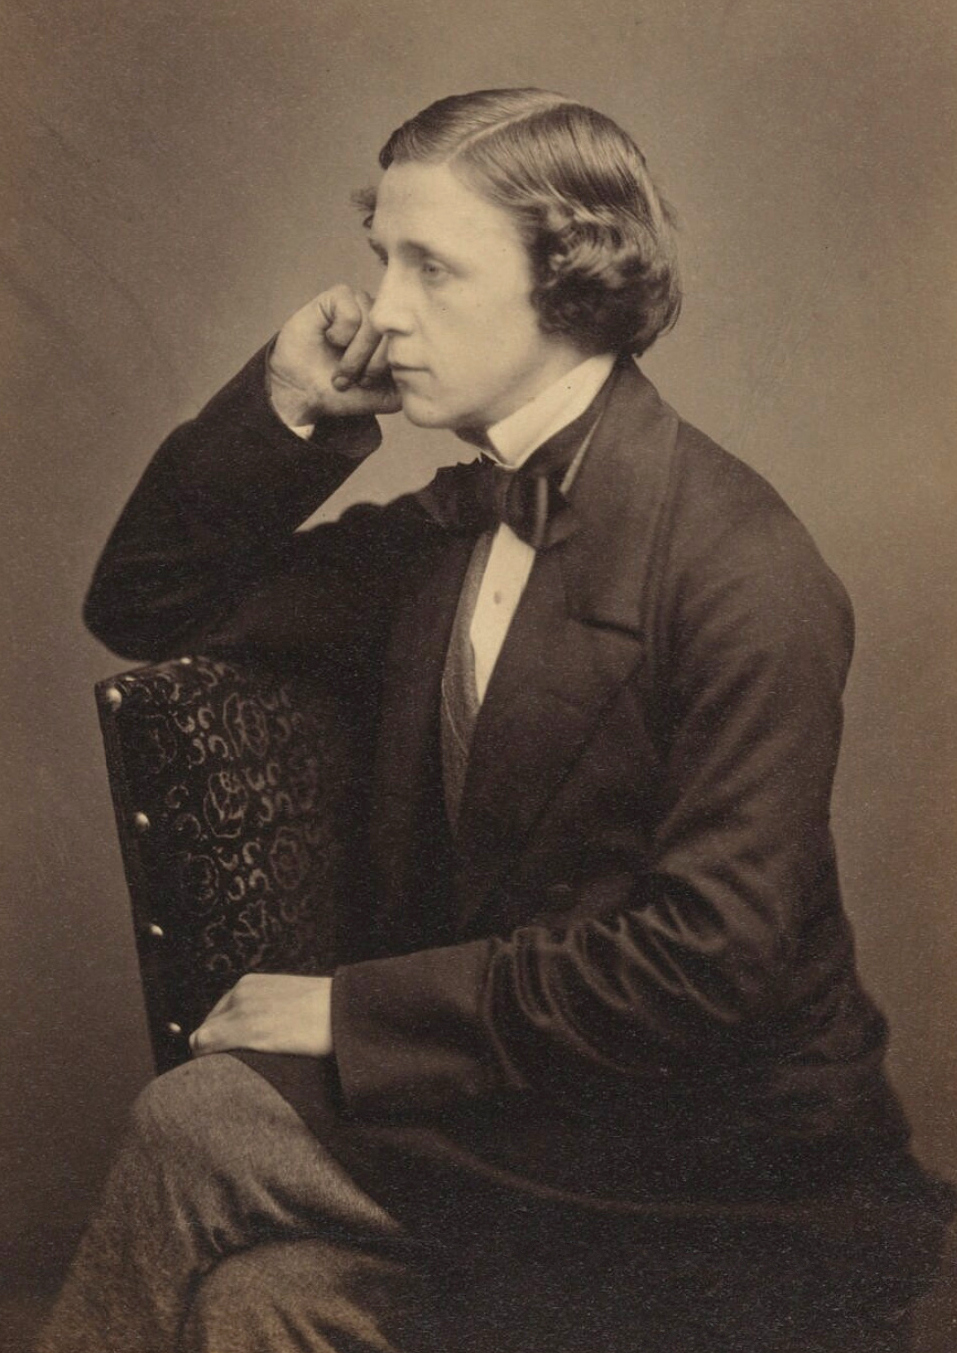 Lewis Carroll (c) Wikipedia